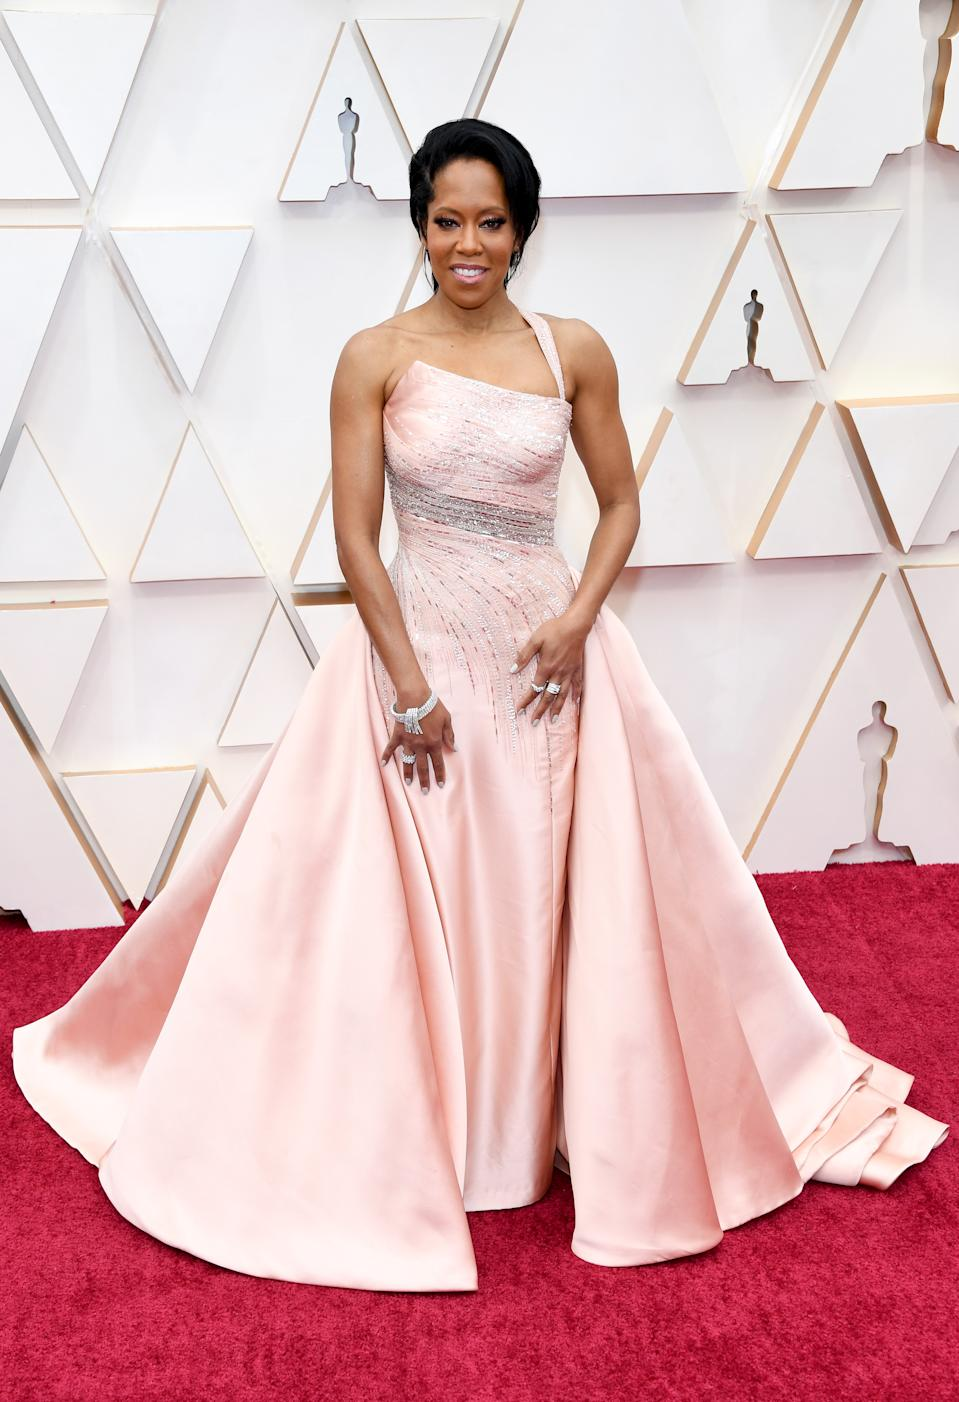 King, who picked up the Oscar in 2019 for Best Supporting Actress, arrived in a pink Versace gown with flowing train and silver embellishments.